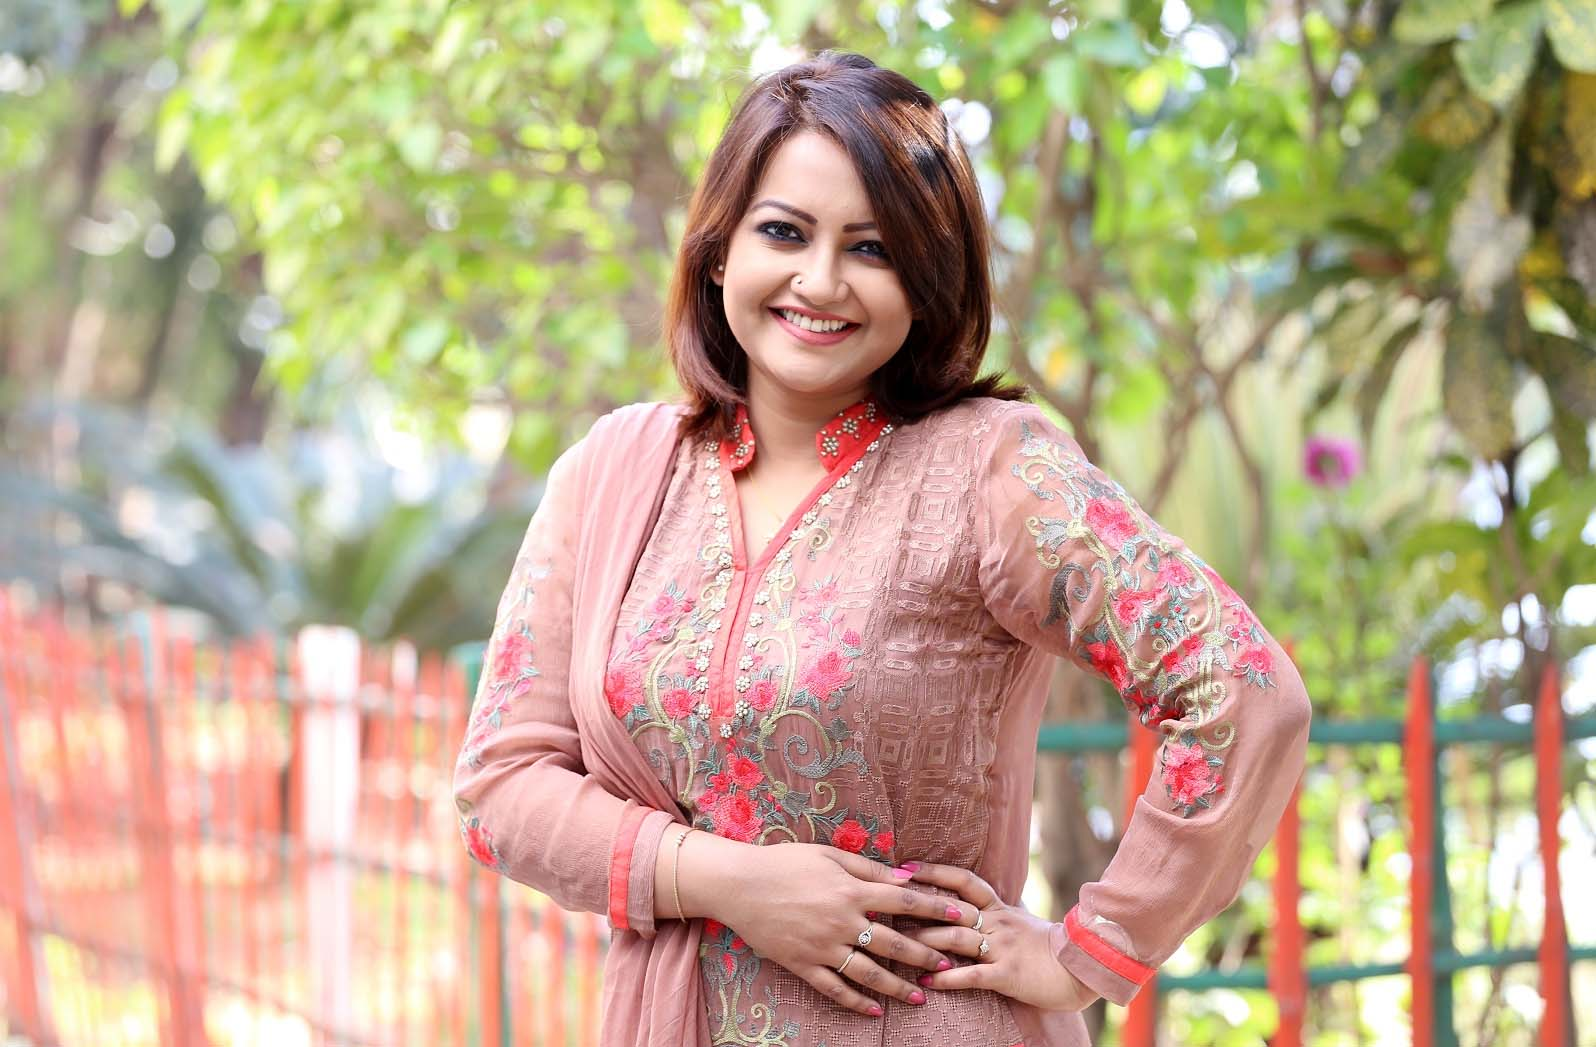 Nawsheen quits job, now focuses on acting only